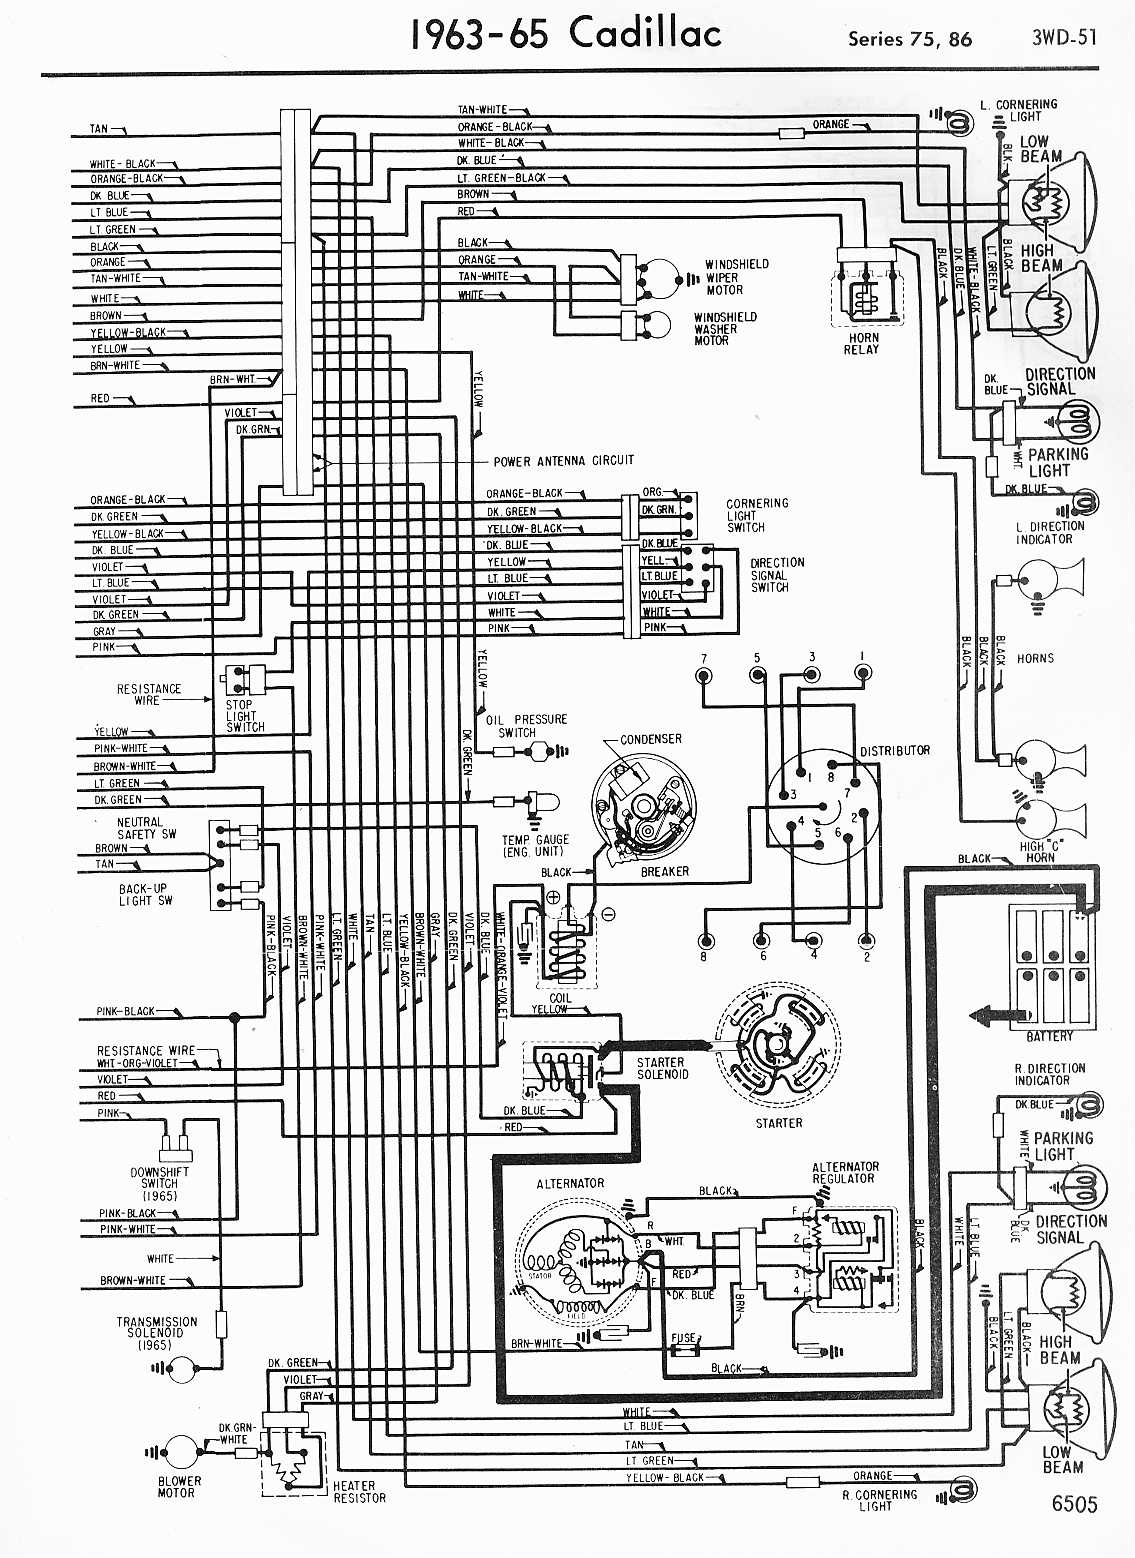 DIAGRAM] 2000 Cadillac Eldorado Wiring Diagrams FULL Version HD Quality Wiring  Diagrams - SXEDIAGRAMMA.GSXBOOKING.ITsxediagramma.gsxbooking.it